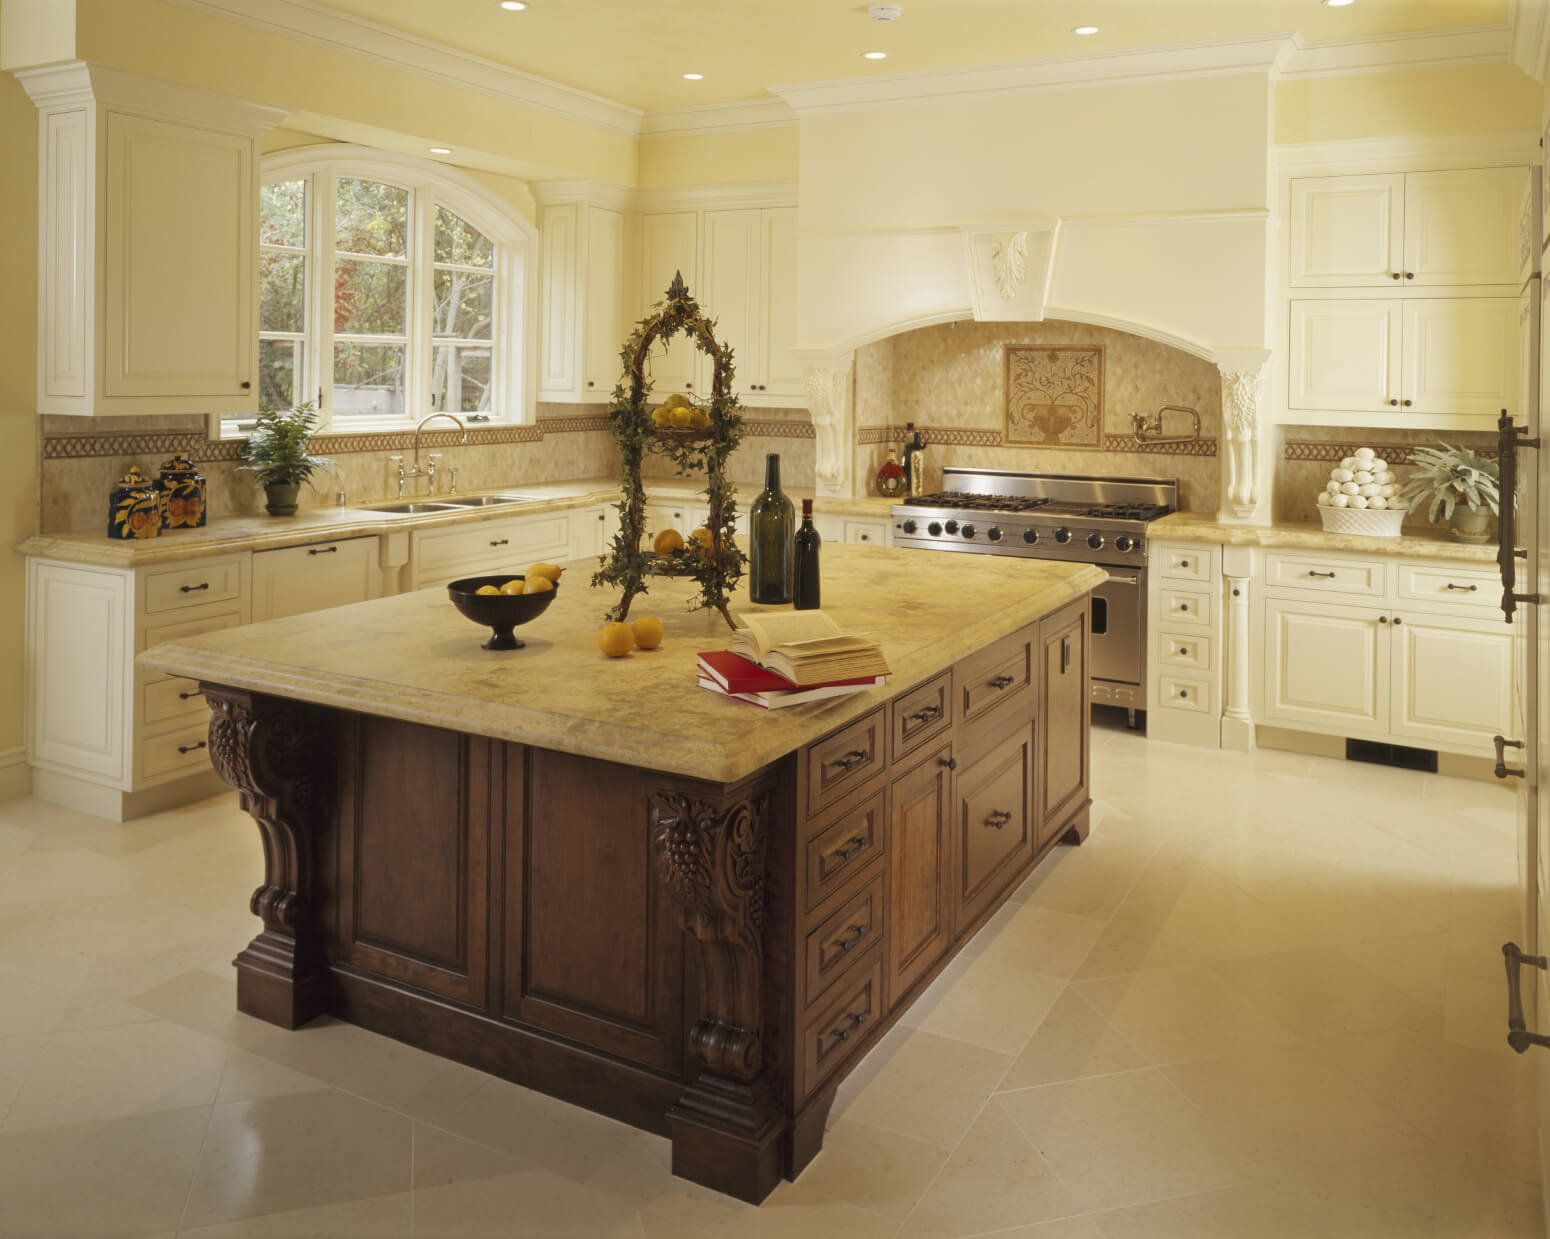 48 luxury dream kitchen designs worth every penny photos for Kitchen center island ideas